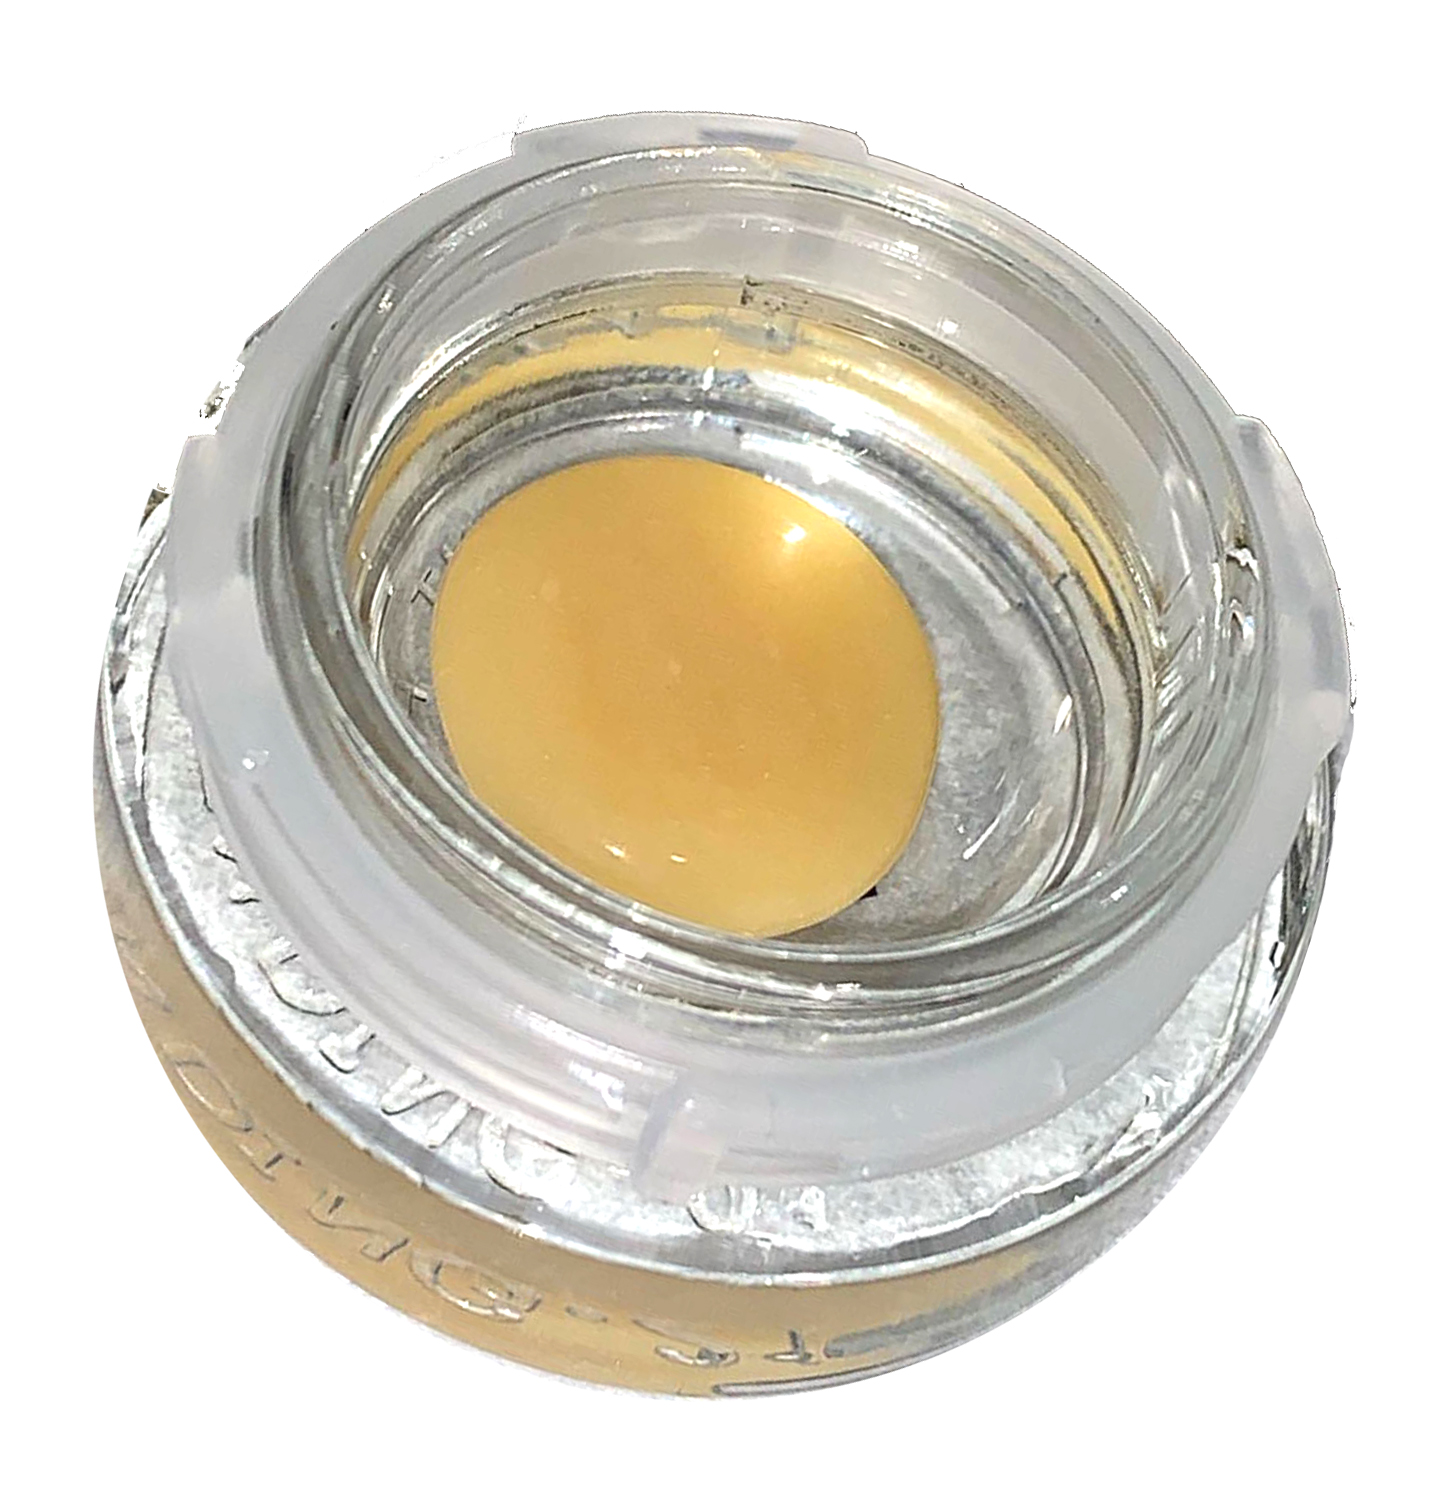 "Fully Melted CA Strawberry Banana Rosin 1g 642.29mg THC Total 2.7mg CBD   $70   Strawberry Banana is 70/30 indica-dominant. A genetic cross between Crockett's  Banana Kush  and the ""Strawberry""  phenotype  of  Bubble Gum , Strawberry Banana inherits a sweet fruity flavor that earned this hybrid her name. Known for its heavy resin production and high THC content, Strawberry Banana produces happy, peaceful effects that sharpen creativity and sensory awareness."